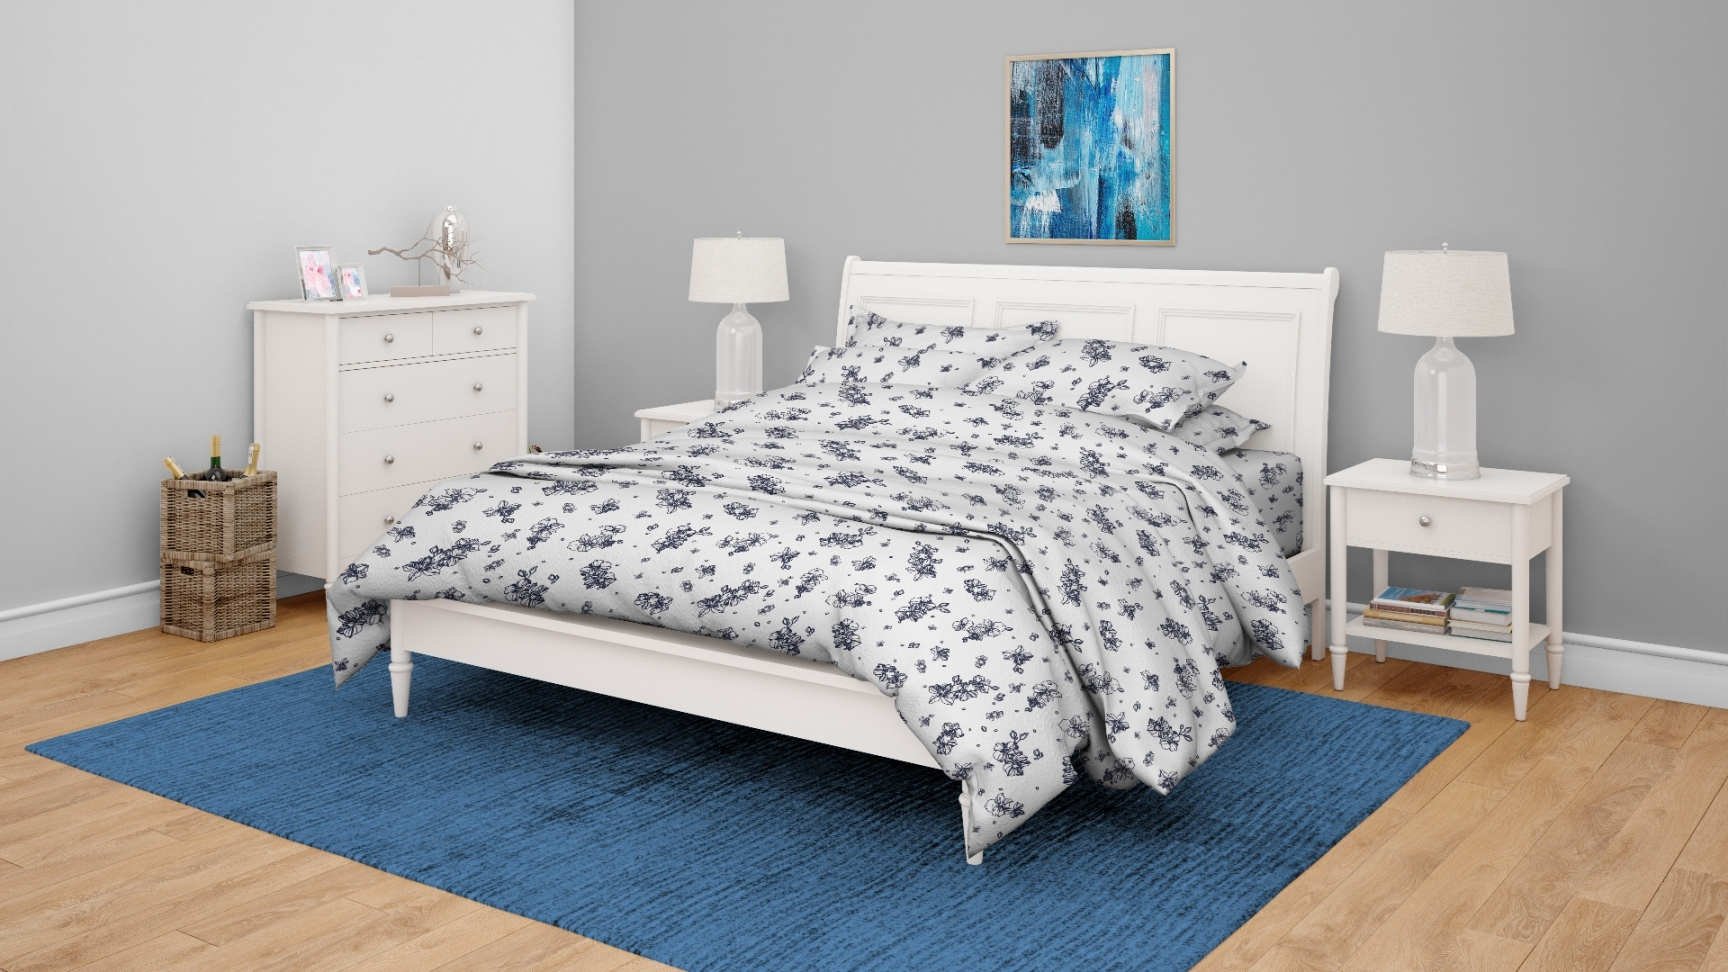 Swaas antimicrobial sustainable bedsheets